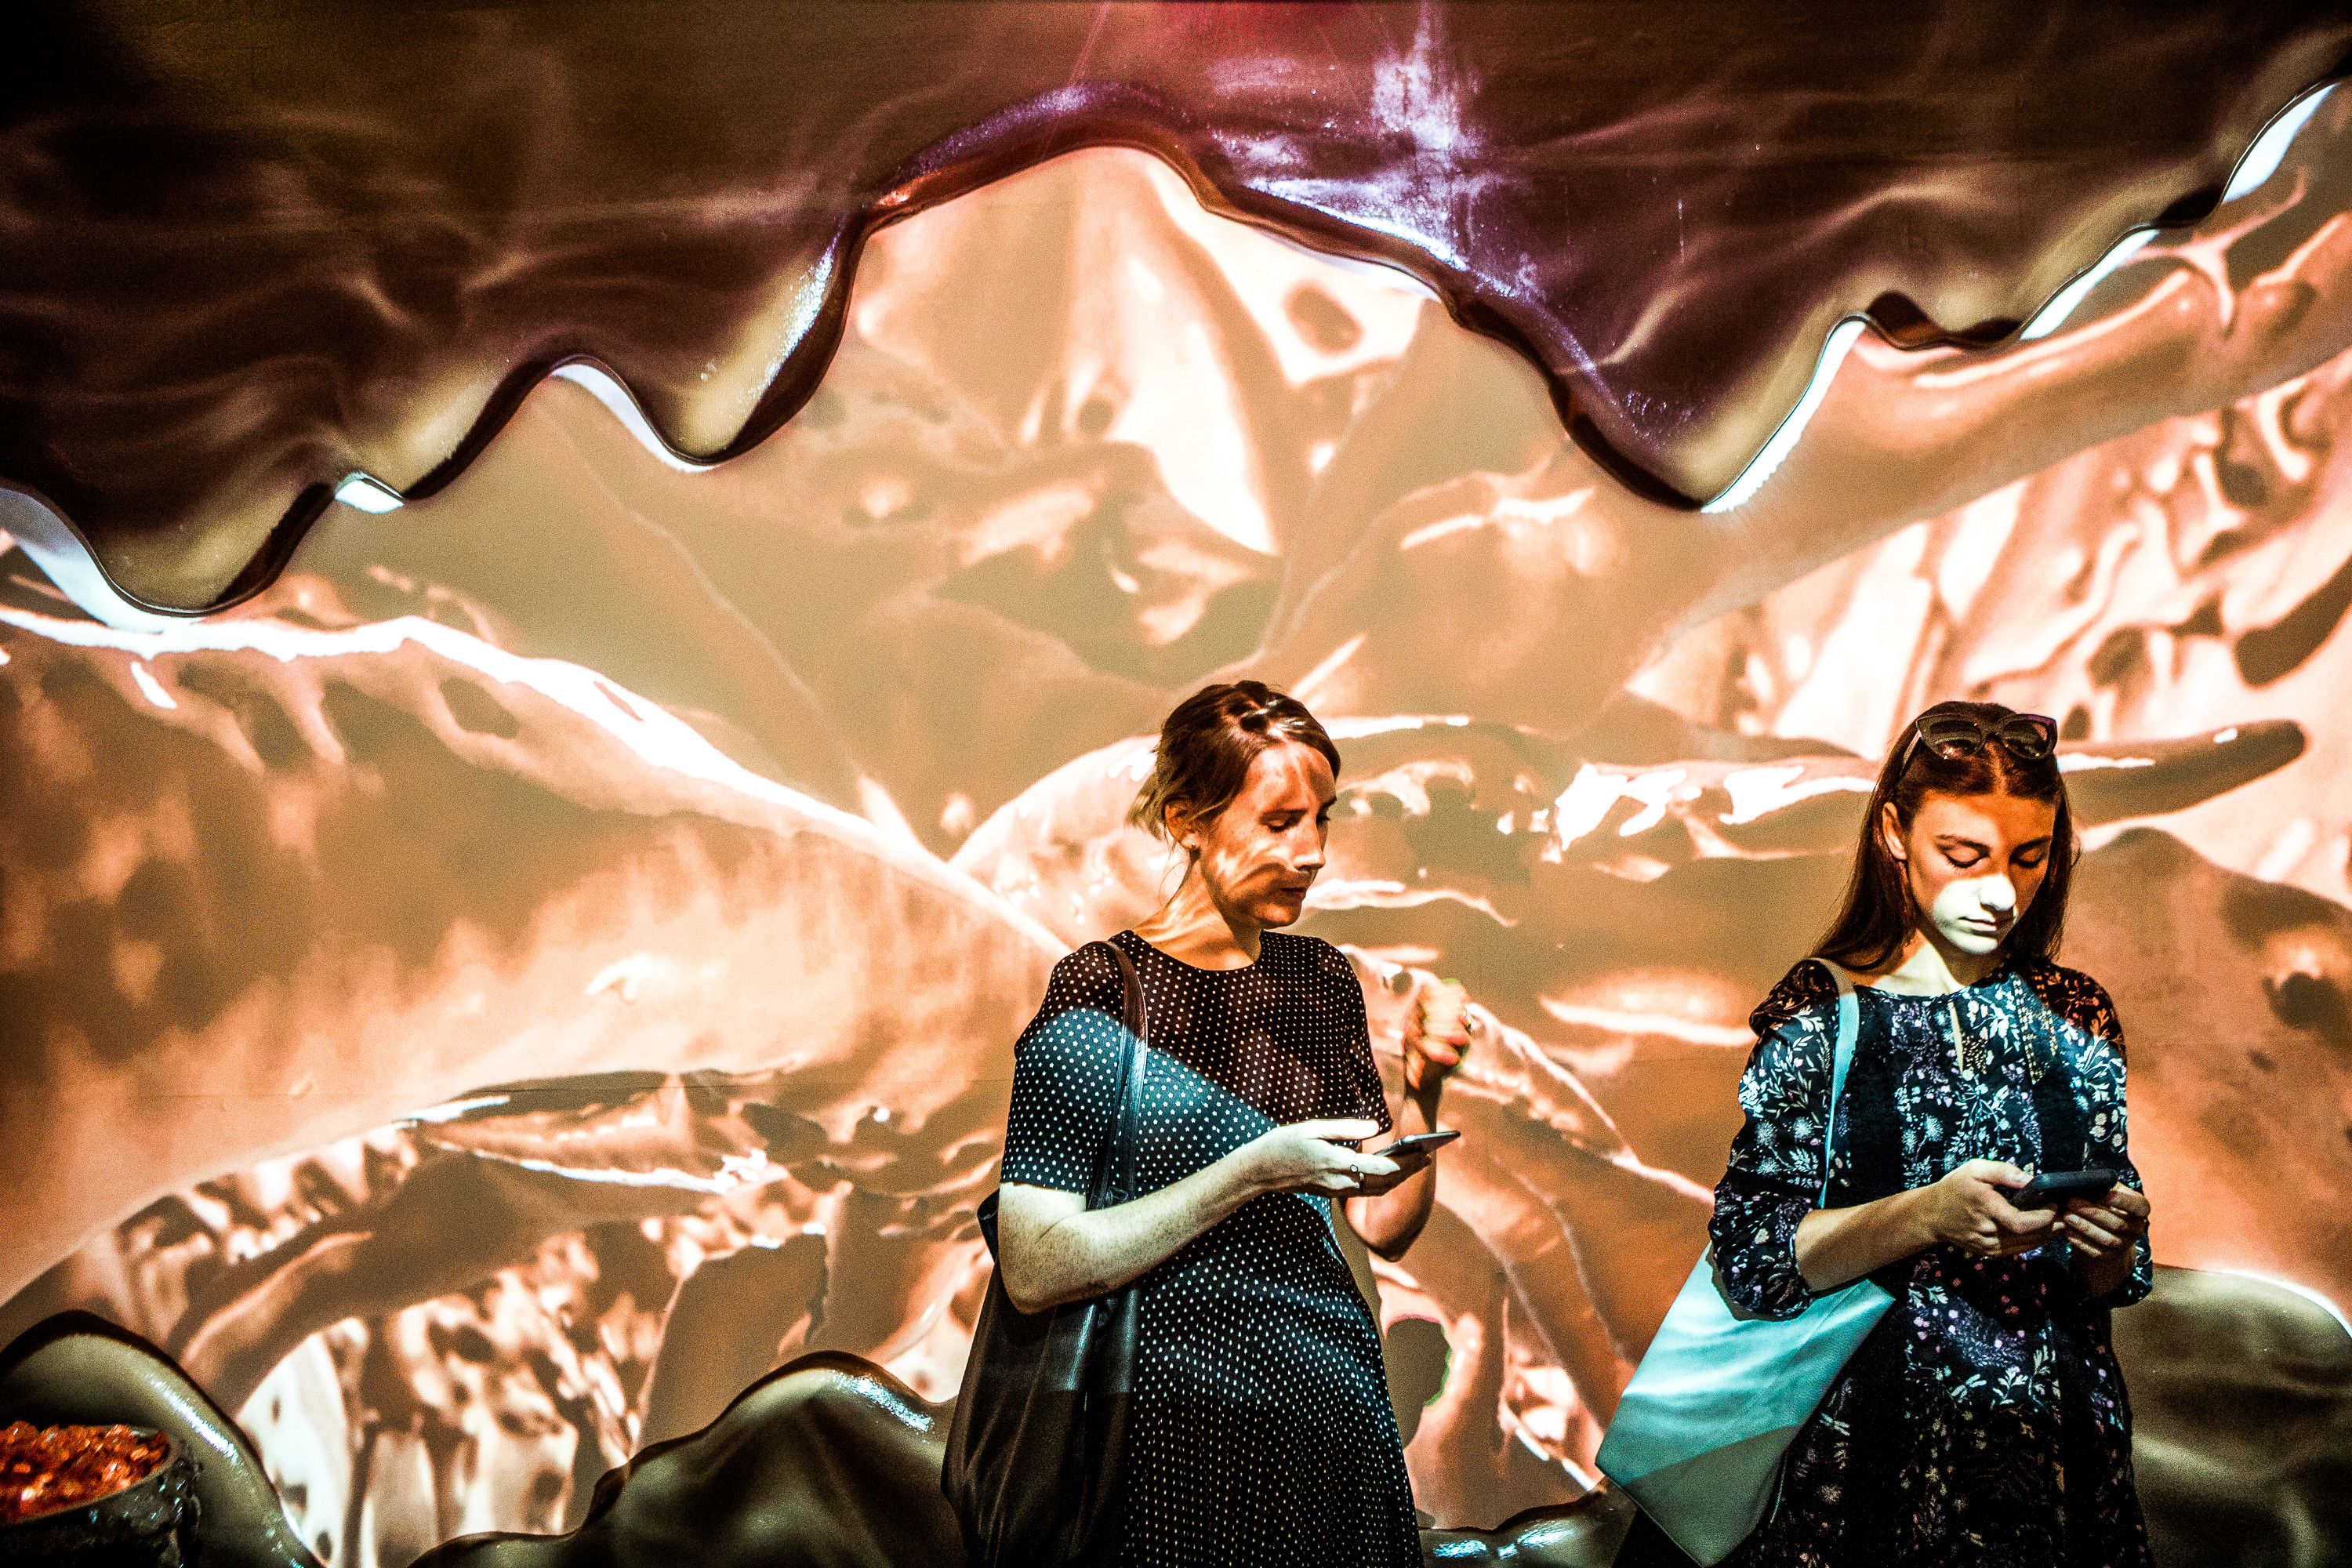 Attendees pass through the chocolate room, where projections of liquid chocolate swirl along the wall, during a press preview of the Museum of Ice Cream in New York.